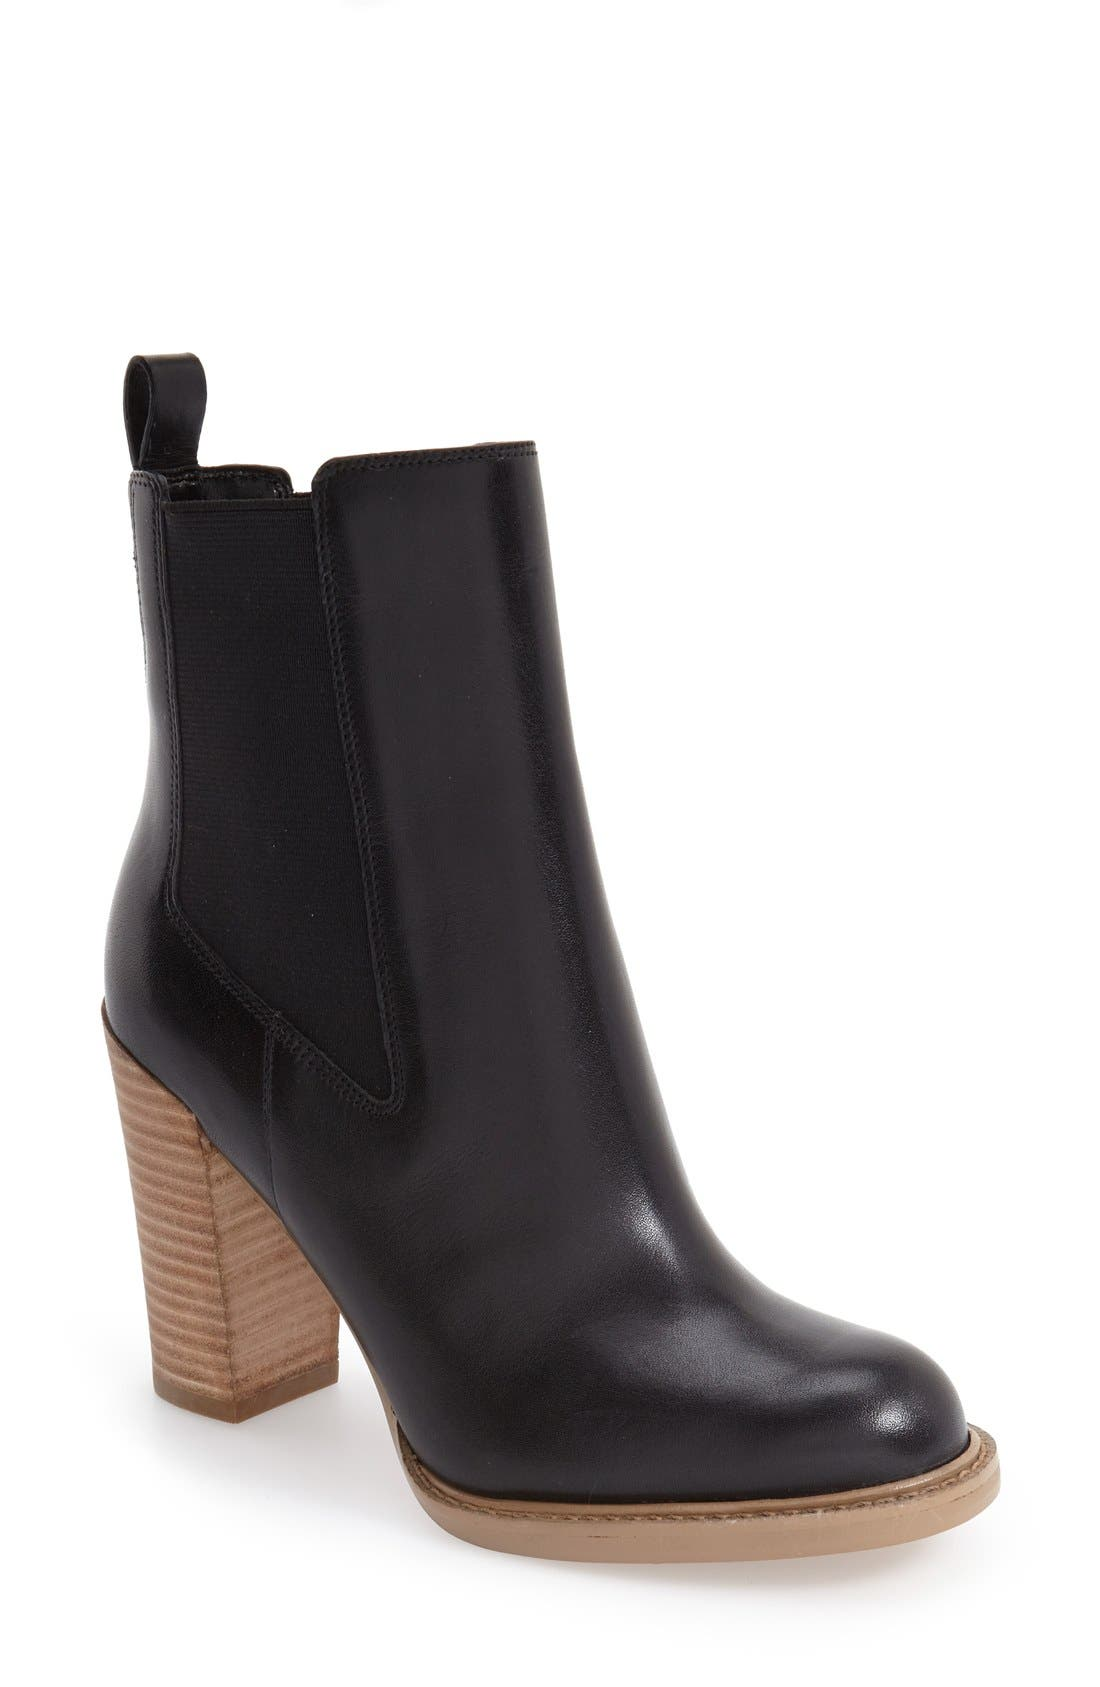 Main Image - Marc Fisher LTD 'Harley' Chelsea Boot (women)